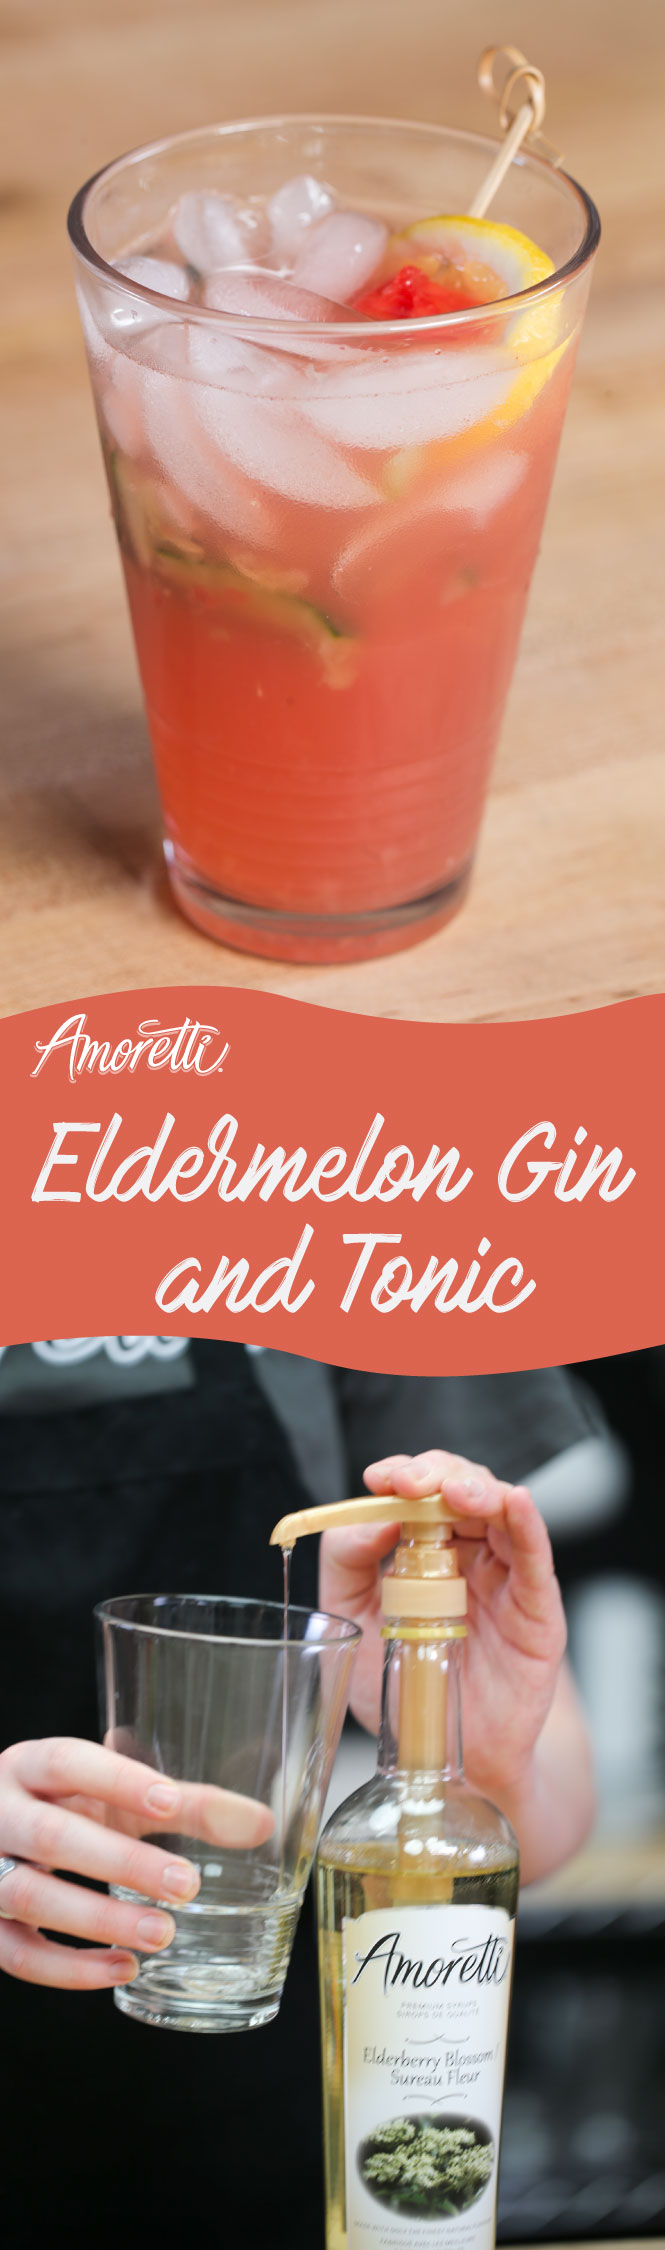 With a dollop of agave nectar for sweetness and a touch of elderberry blossom syrup, our Eldermelon Gin and Tonic is sure to be a hit this summer!